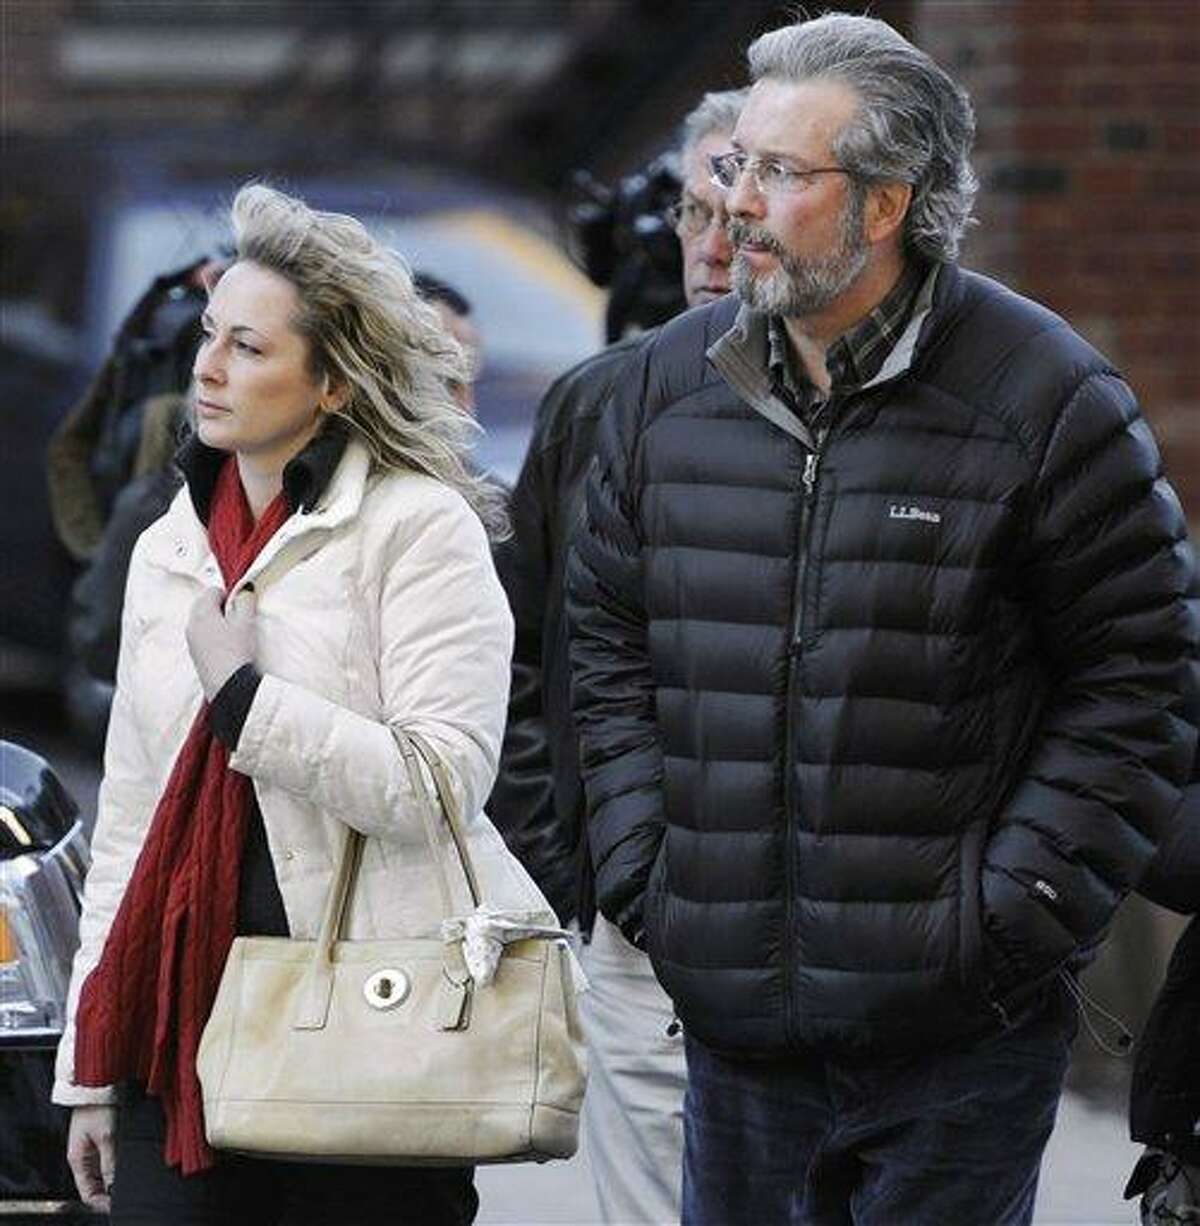 In this December 2011 file photo, Dr. William Petit Jr., right, arrives at Superior Court in New Haven with friend Christine Paluf, on the fourth day of jury deliberations for the penalty phase of the trial of Joshua Komisarjevsky. Associated Press